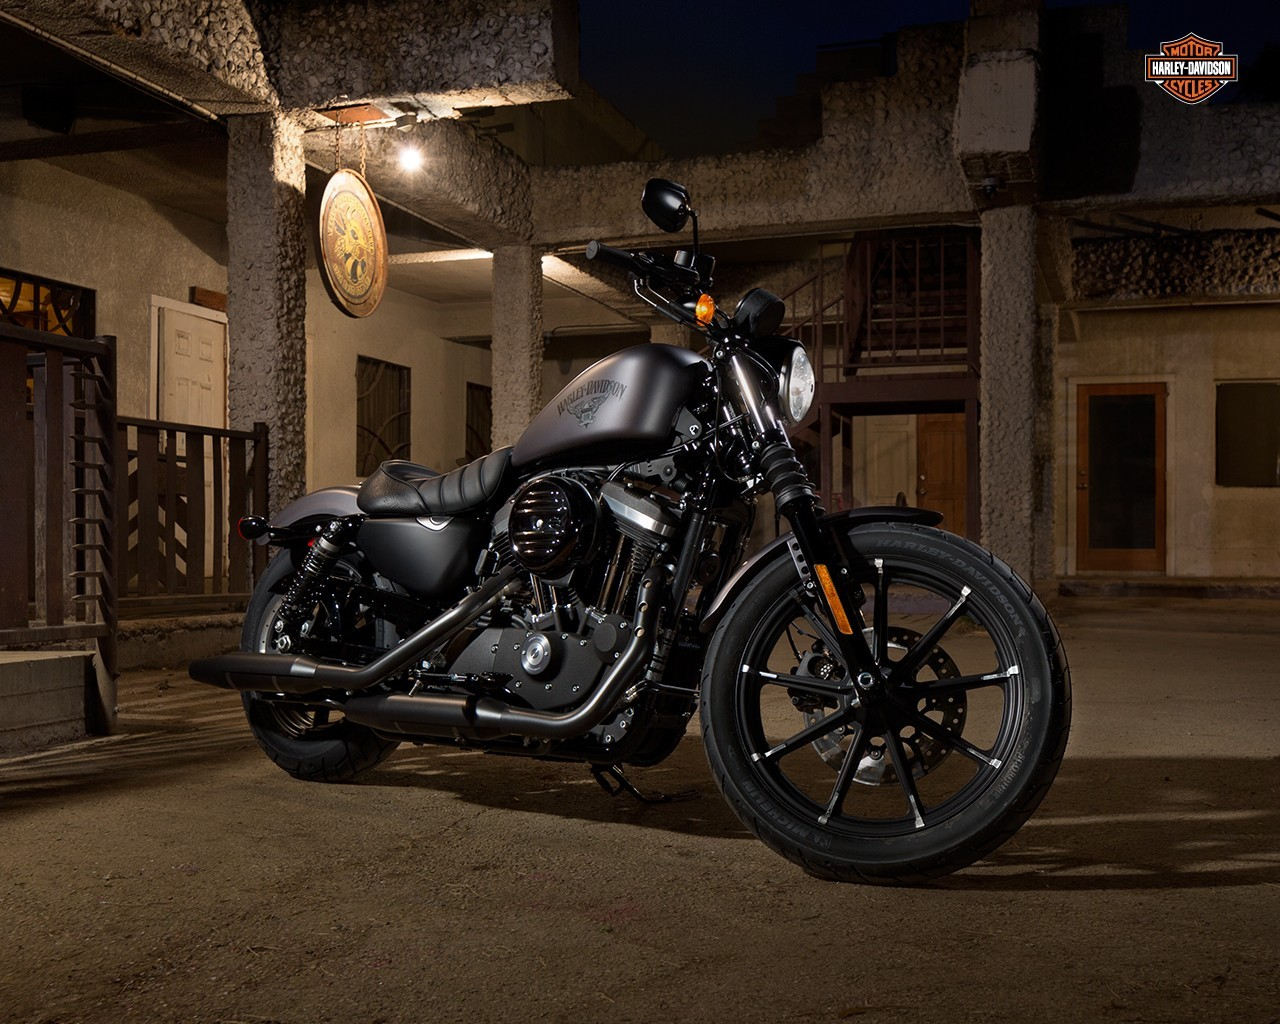 Harley Street 500 >> 2016 Harley-Davidson Iron 883 Receives Suspension Upgrades - autoevolution